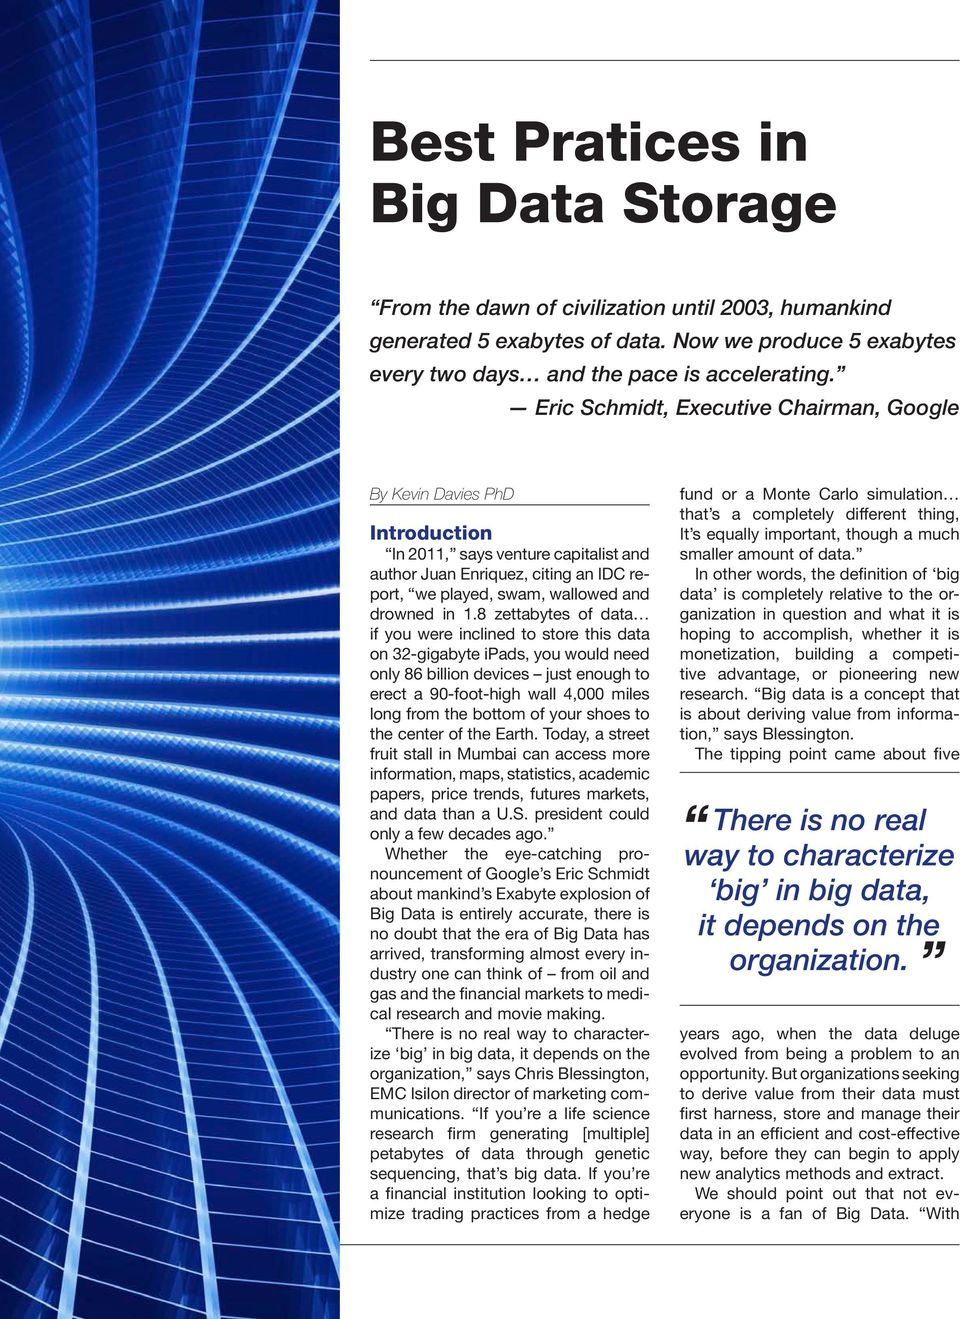 8 zettabytes of data if you were inclined to store this data on 32-gigabyte ipads, you would need only 86 billion devices just enough to erect a 90-foot-high wall 4,000 miles long from the bottom of